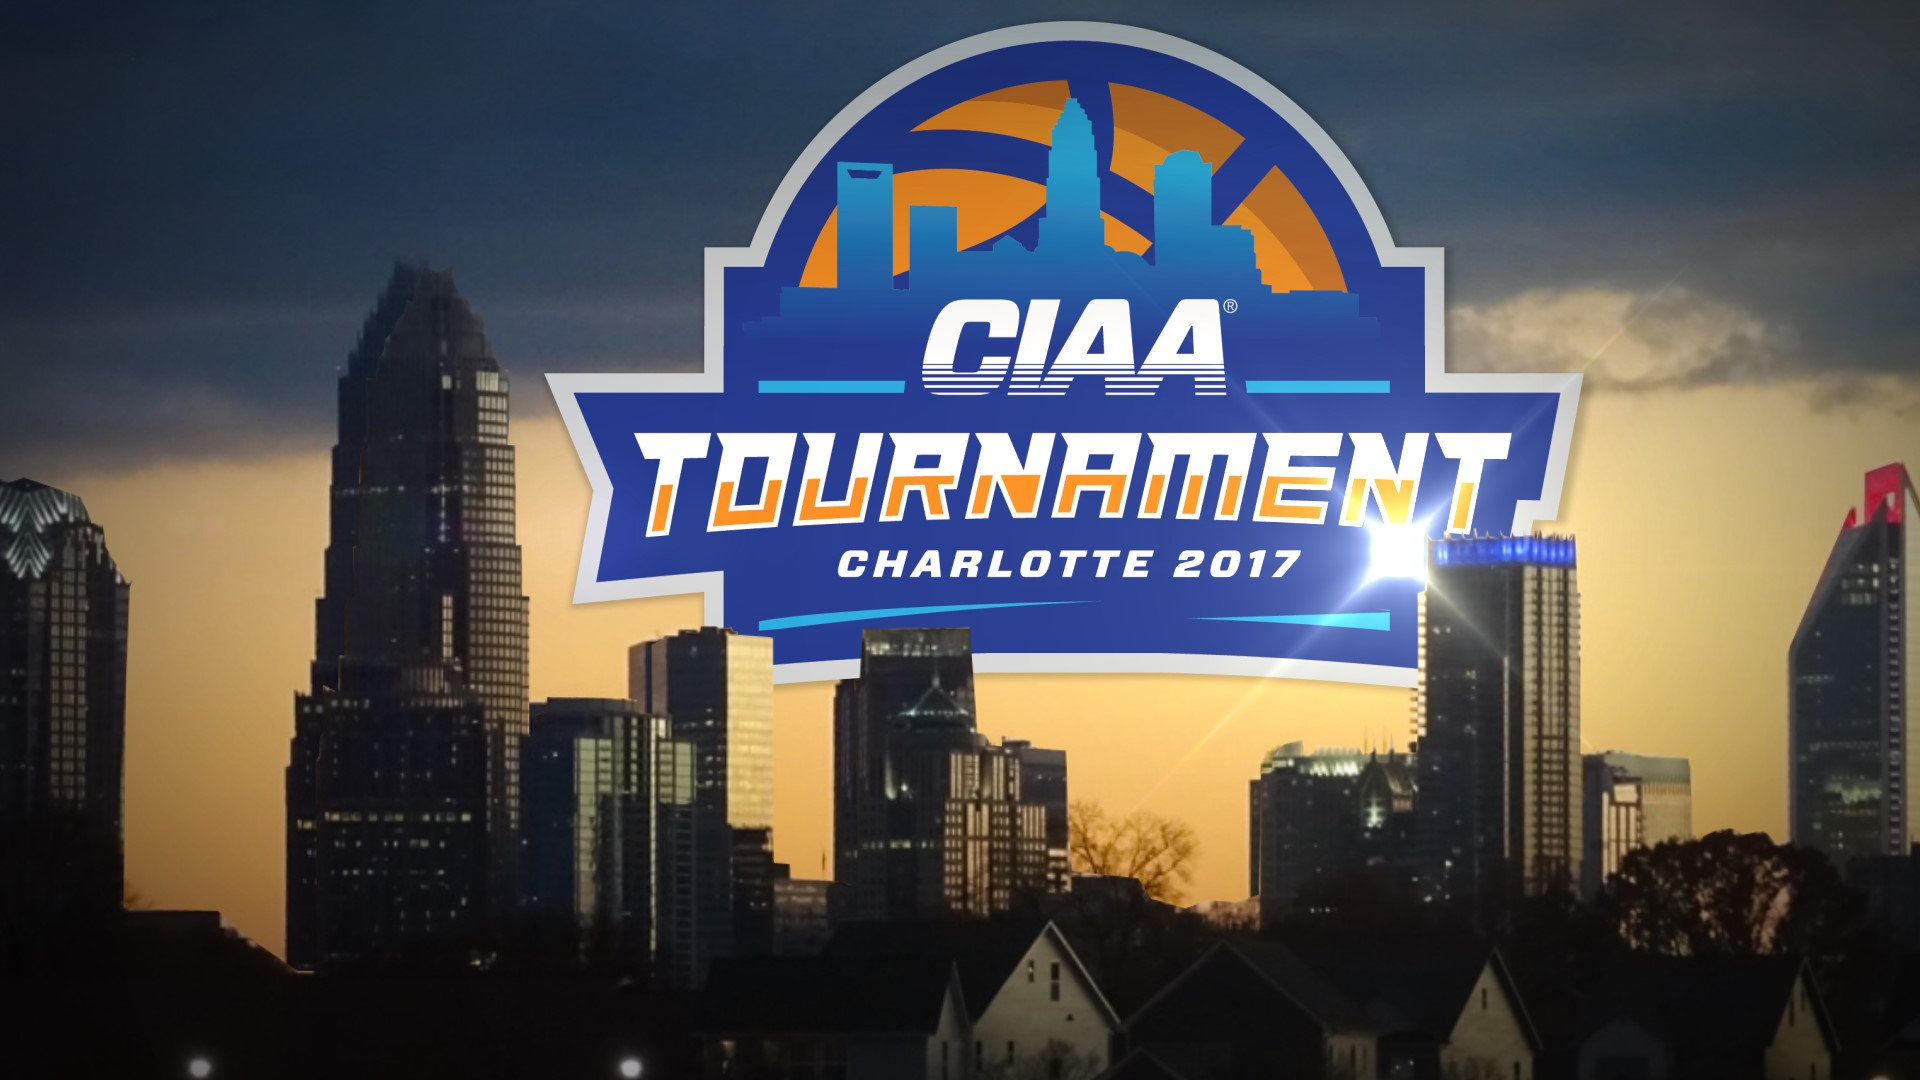 CIAA Basketball Tournament 2017